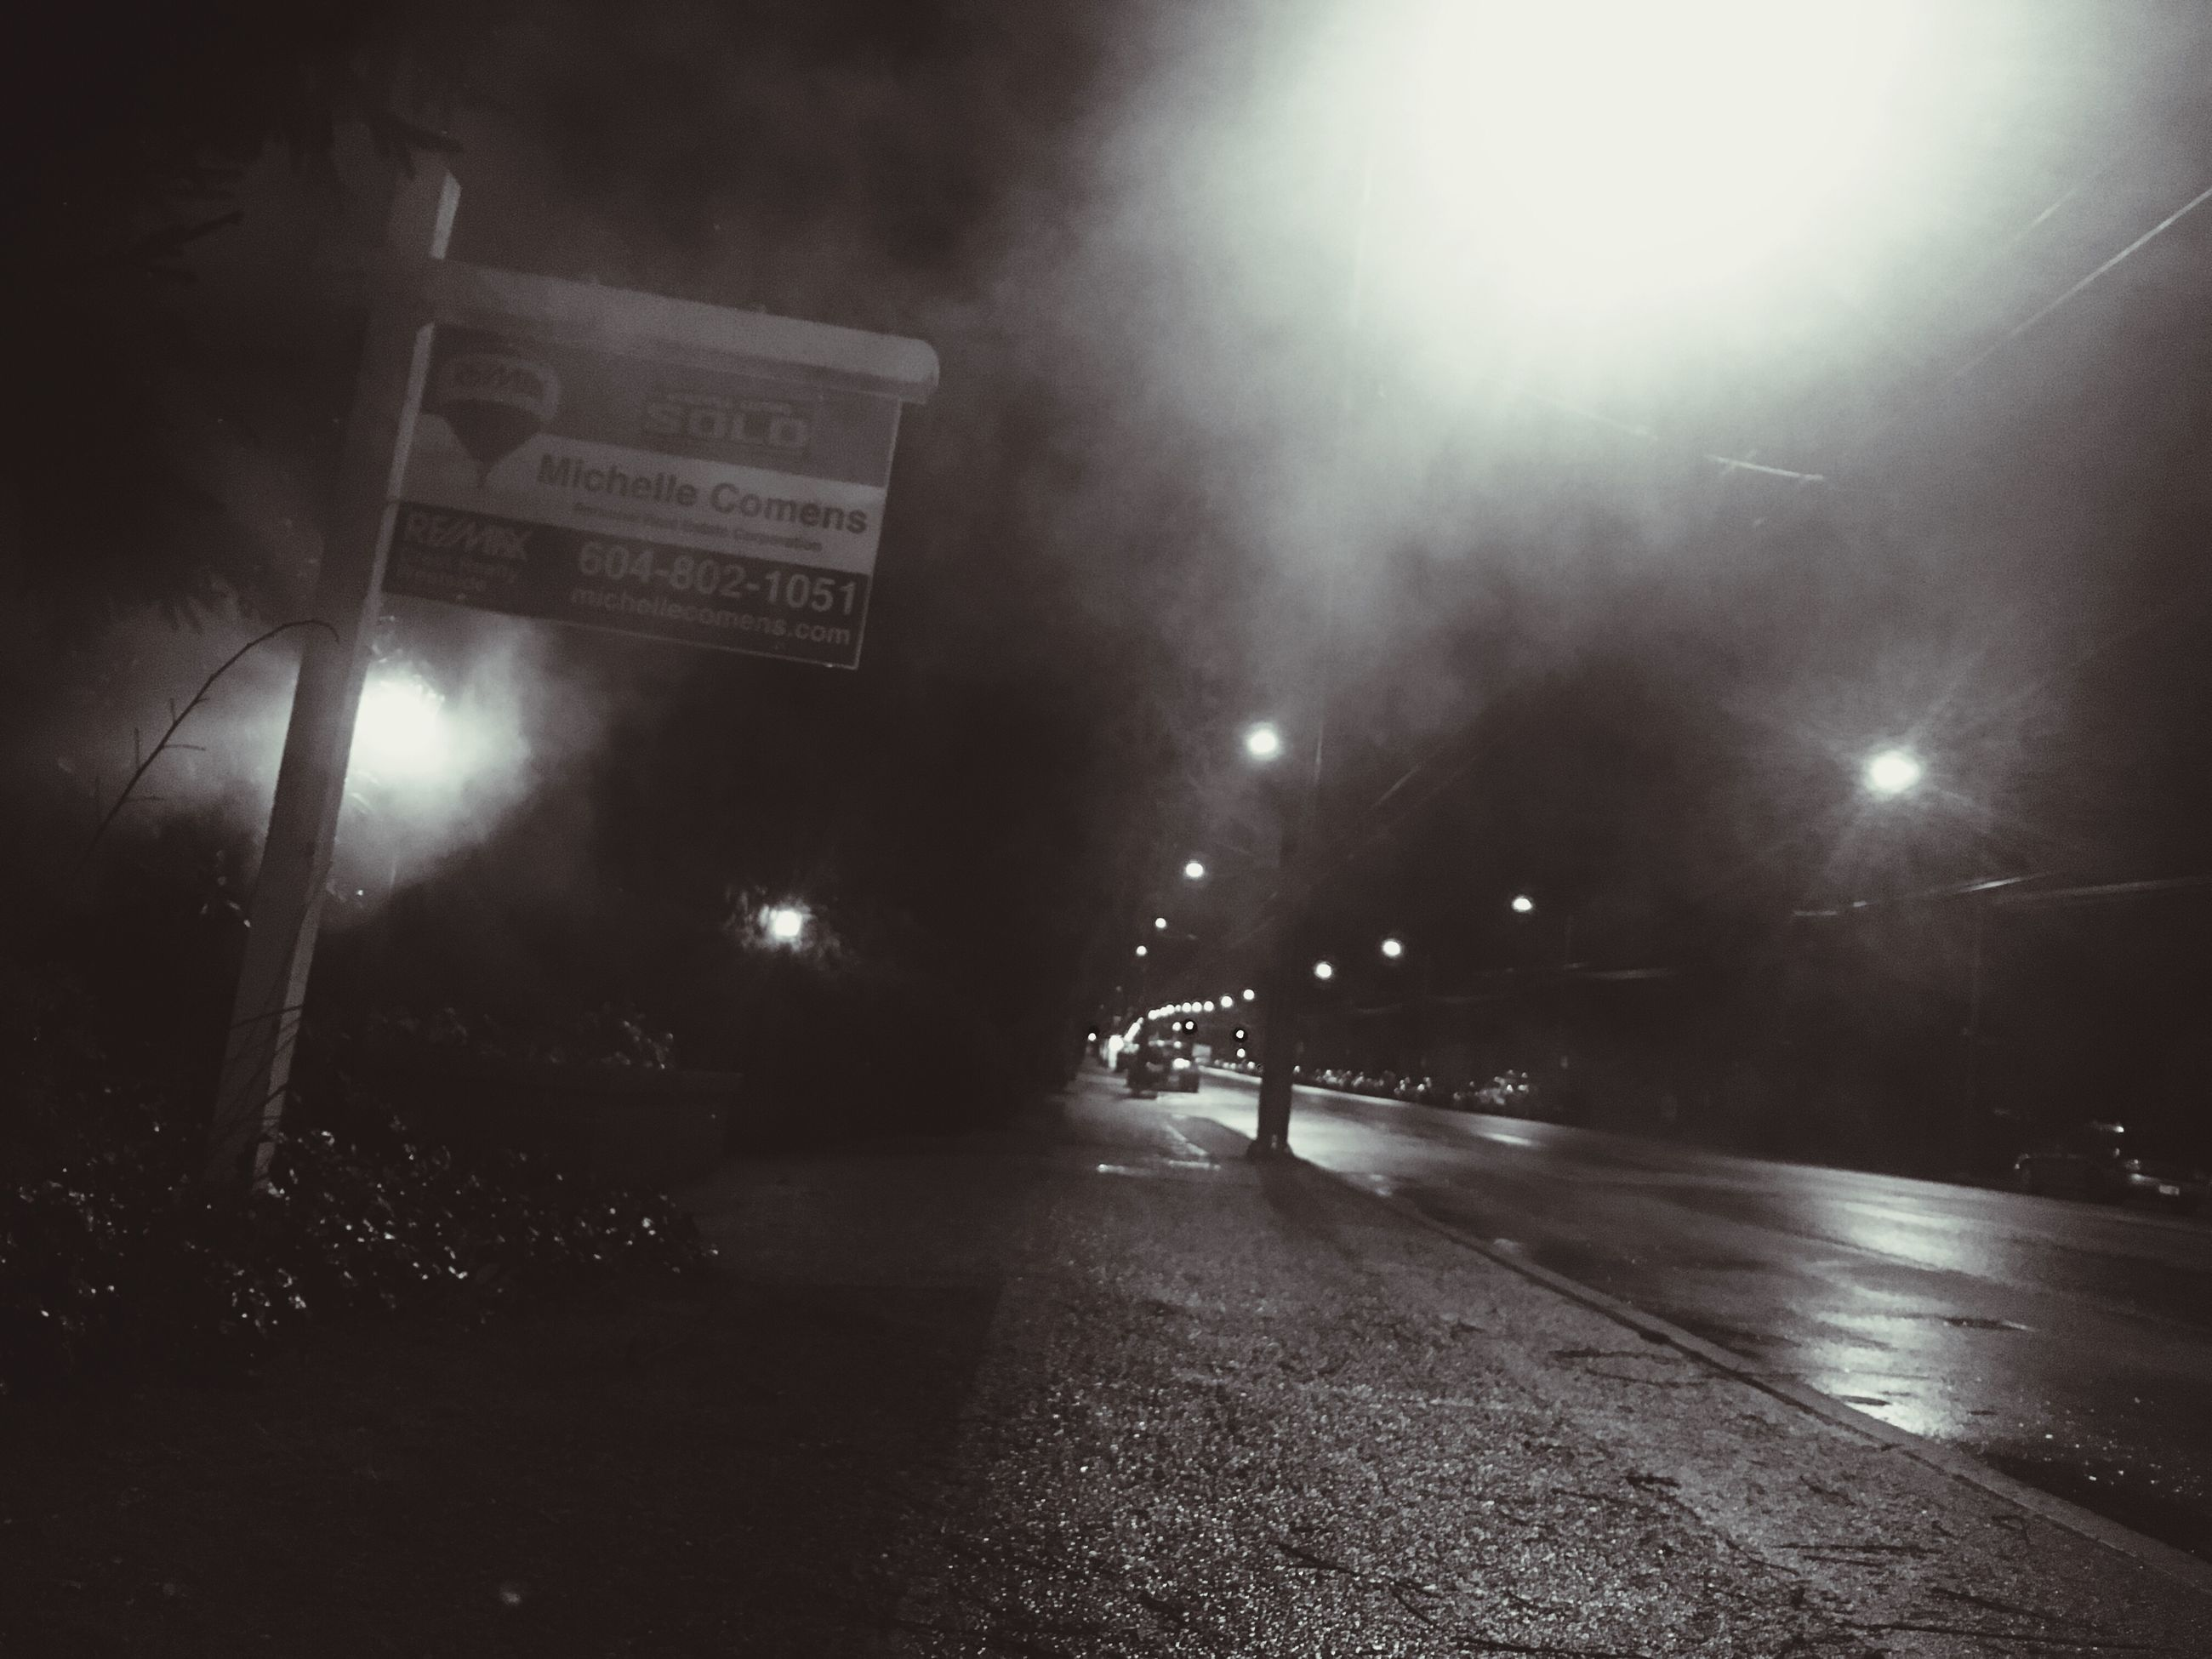 night, illuminated, transportation, the way forward, street light, road, street, lighting equipment, diminishing perspective, road marking, car, on the move, vanishing point, one person, mode of transport, land vehicle, walking, built structure, outdoors, architecture